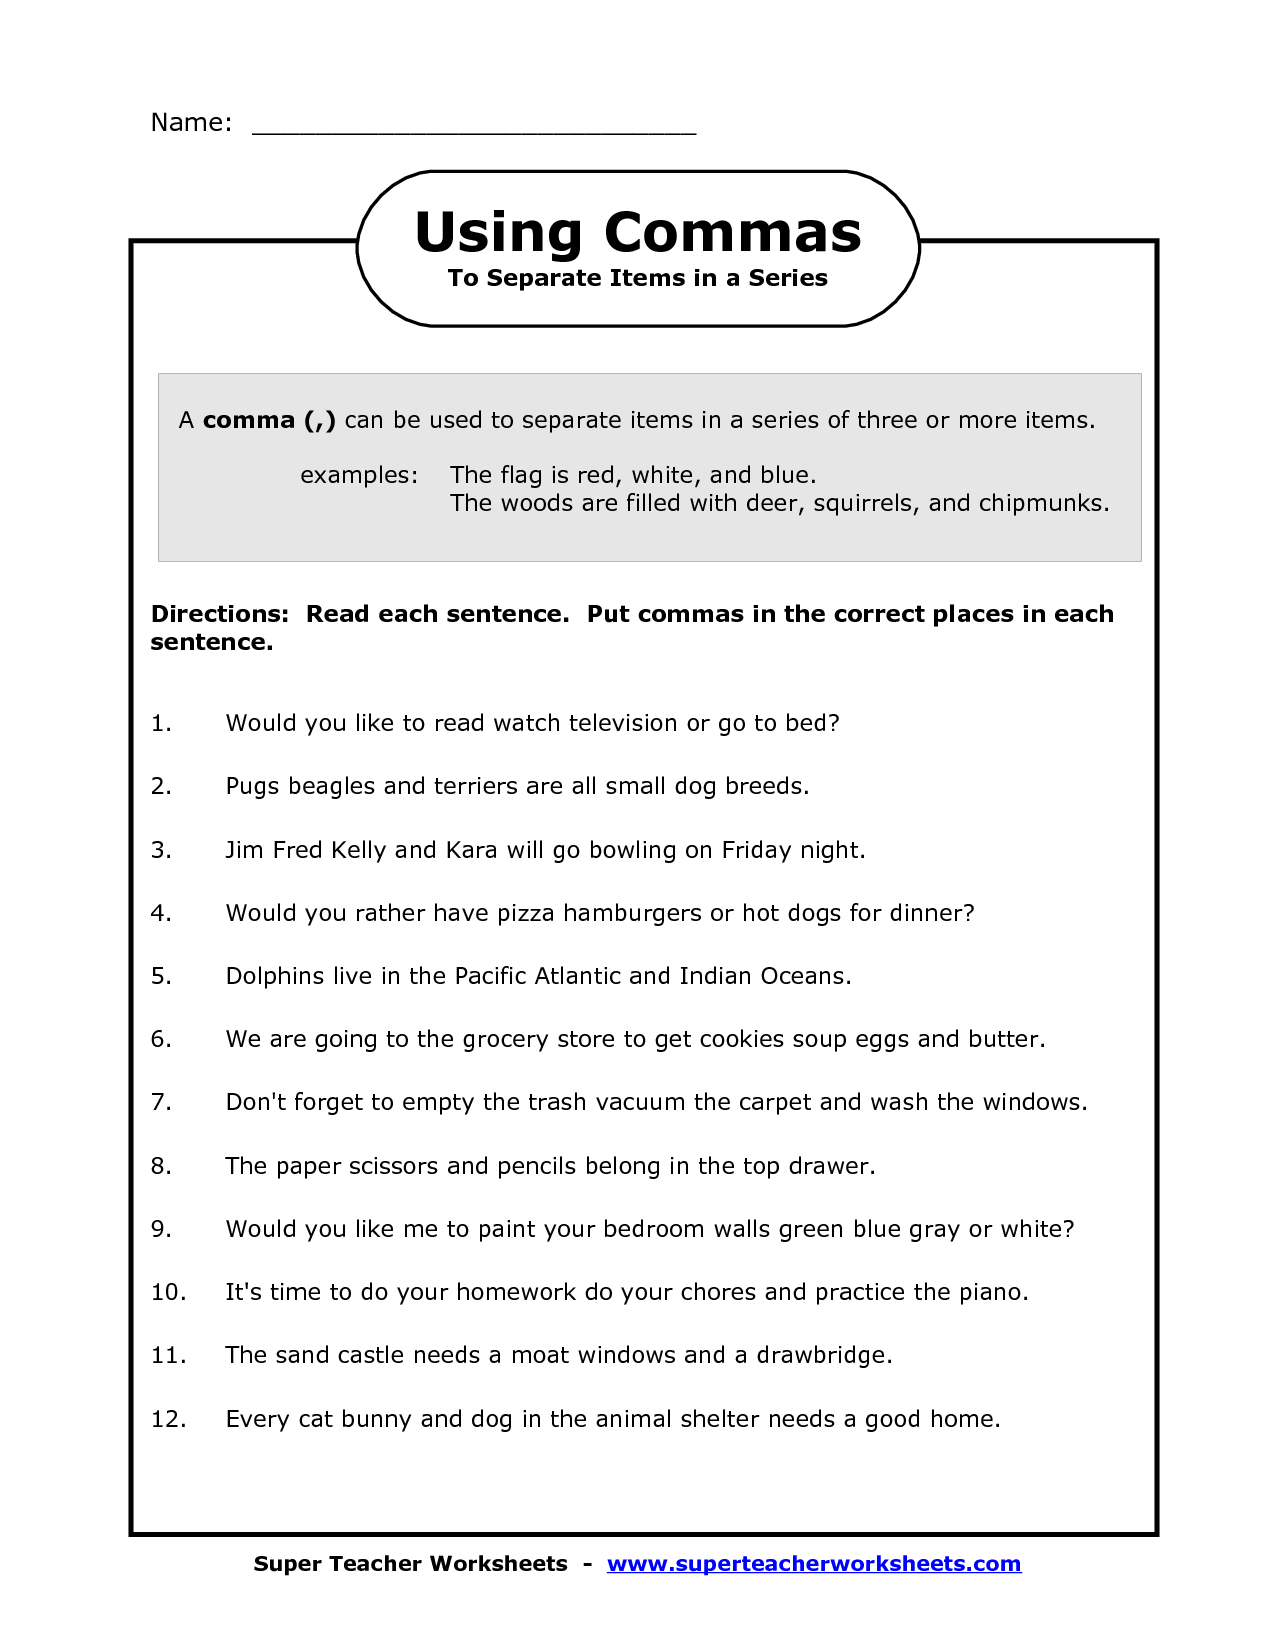 worksheet Punctuation Practice Worksheets comma in a series worksheets image commas worksheet worksheet